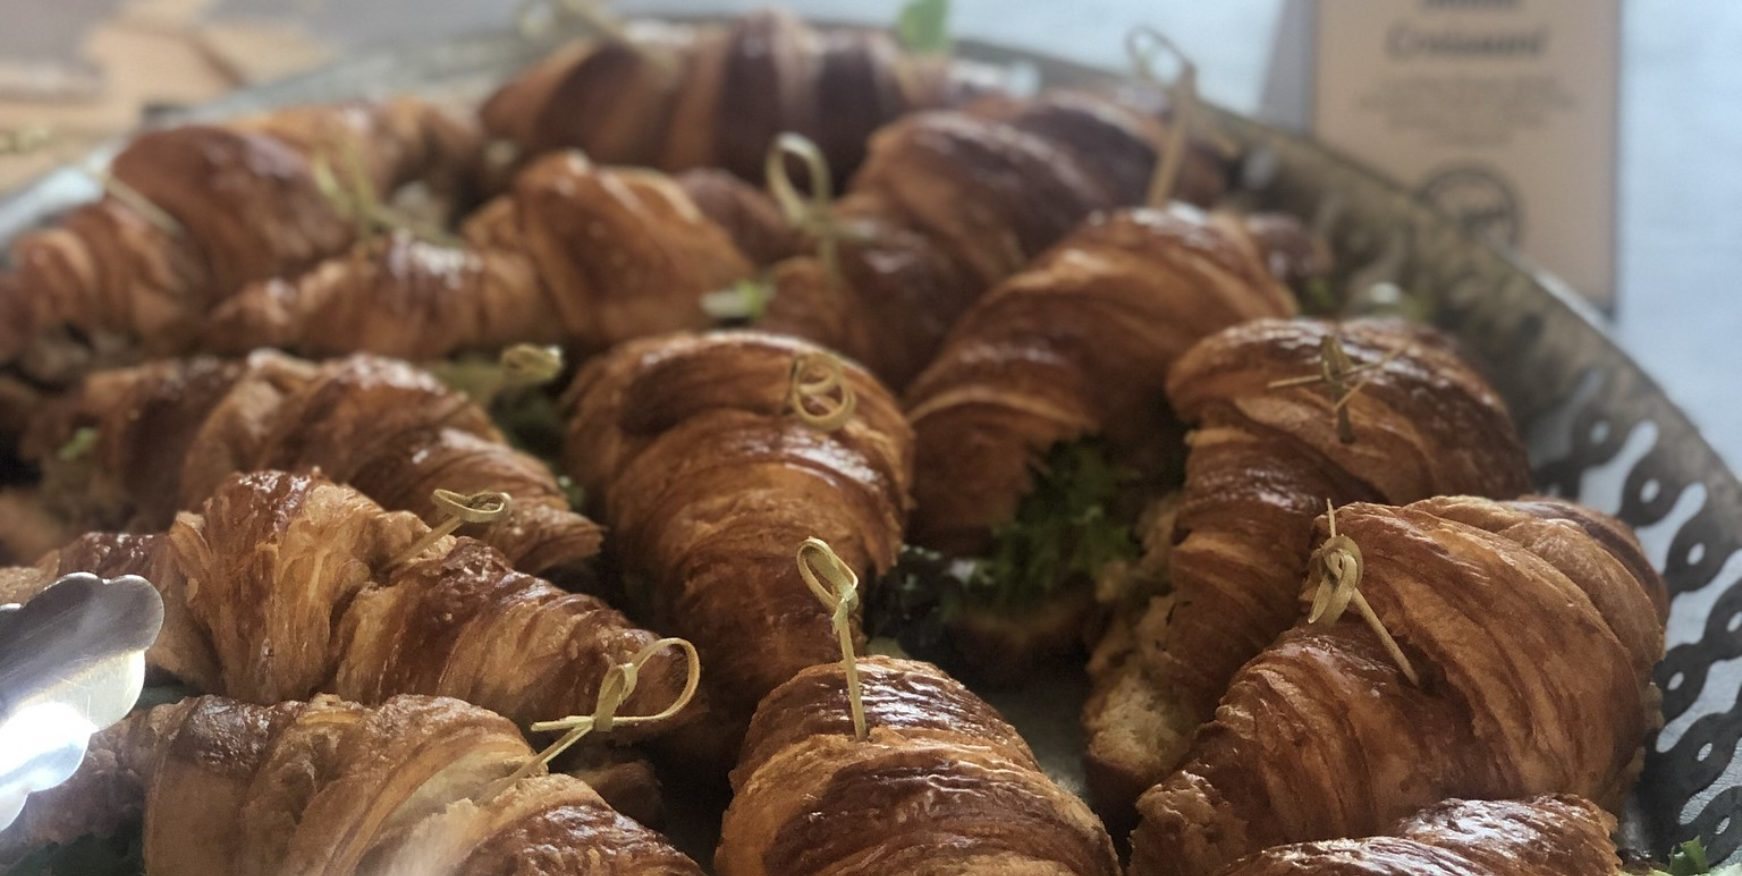 chicken salad croissants from corporate office catering with Cohost